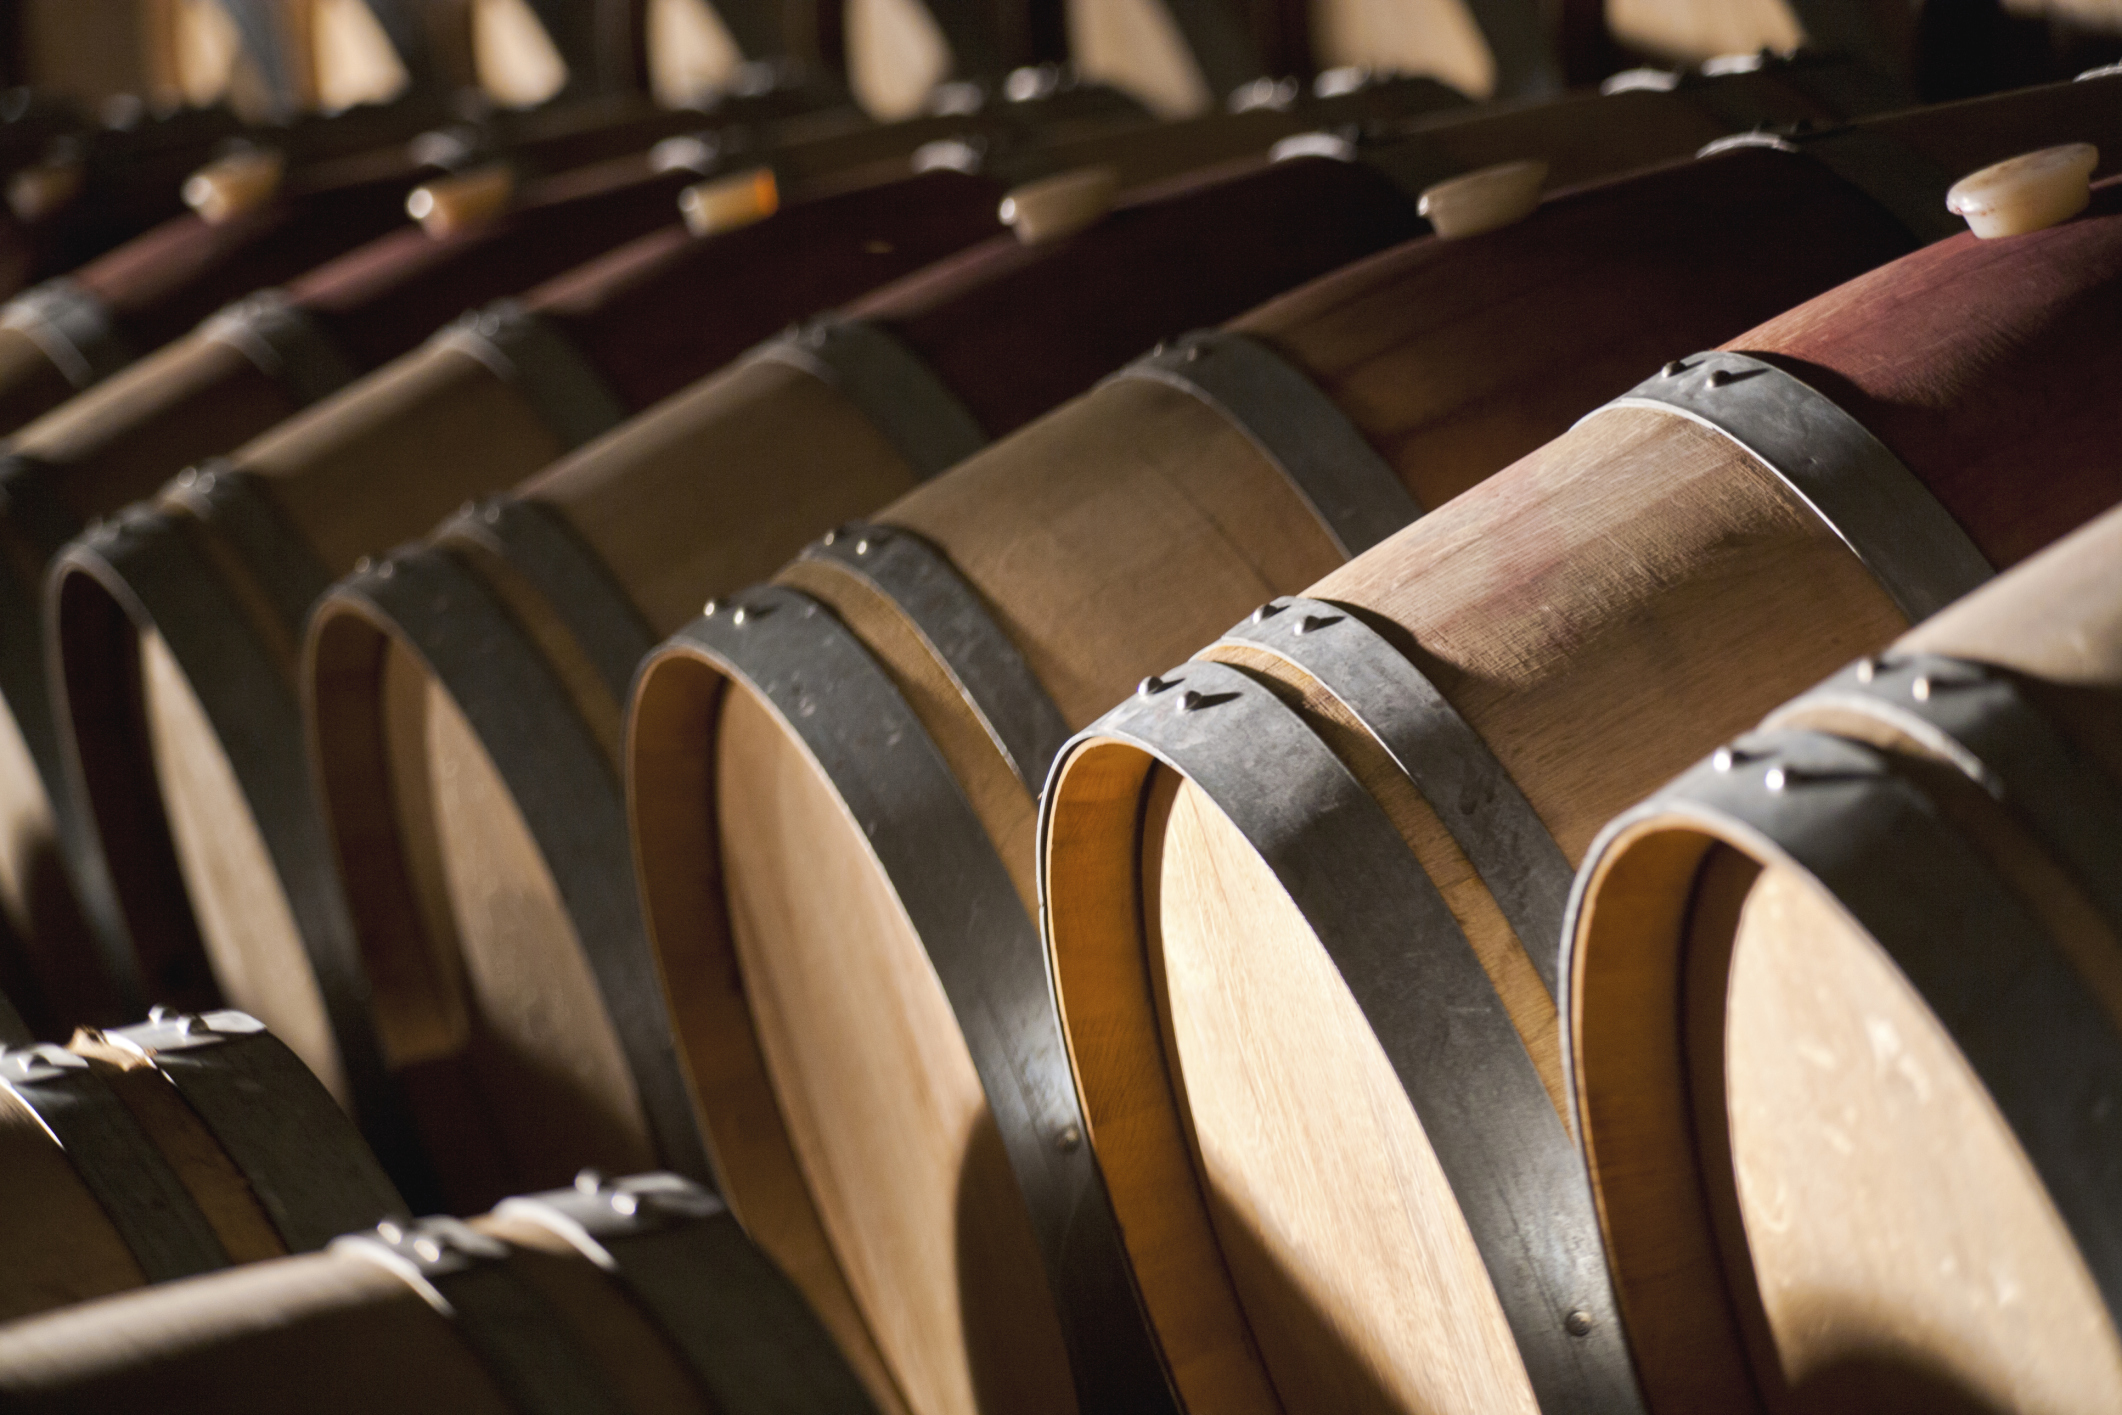 Wine of the Week: Find delicious, value-driven wines in Portugal's Alentejo region